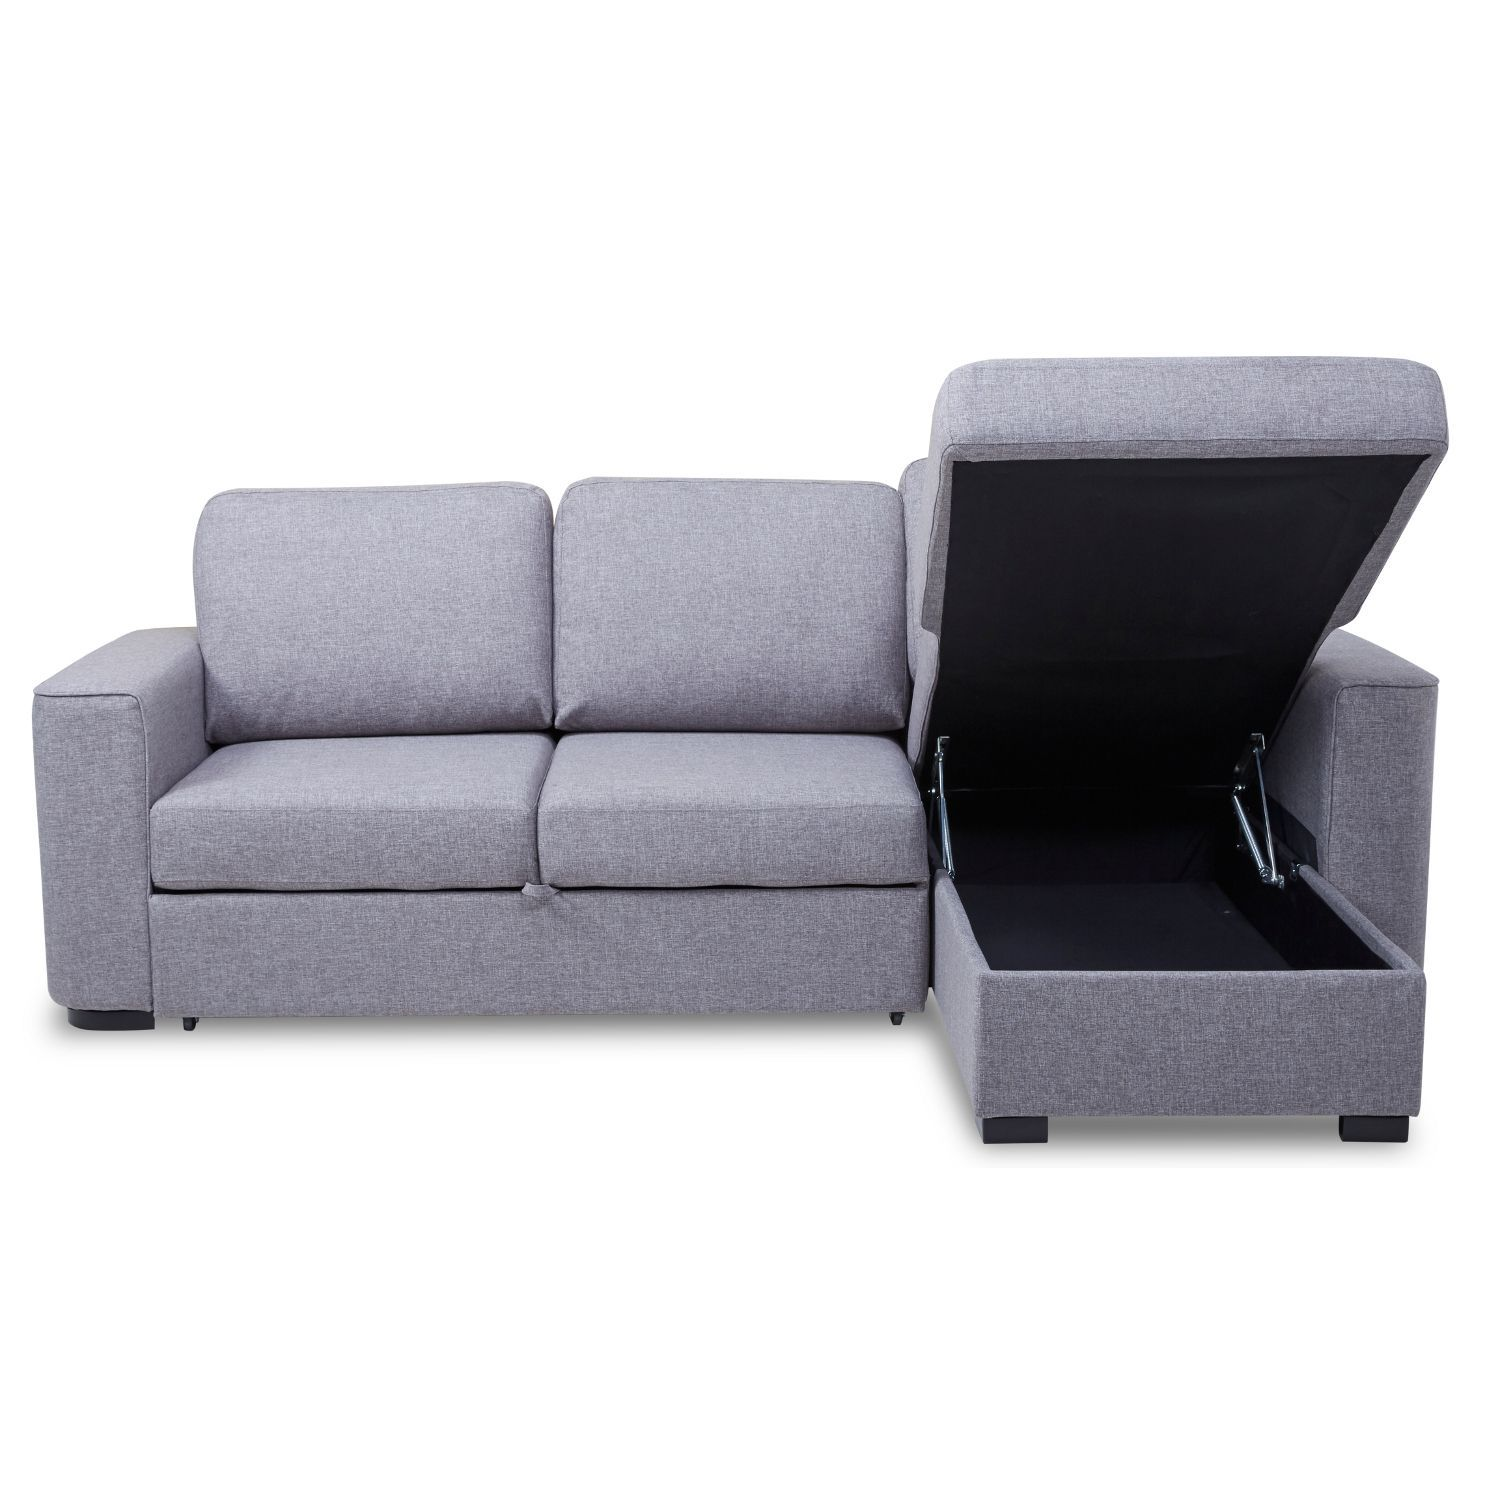 Ronny Fabric Corner Sofa Bed with Storage – Next Day ...